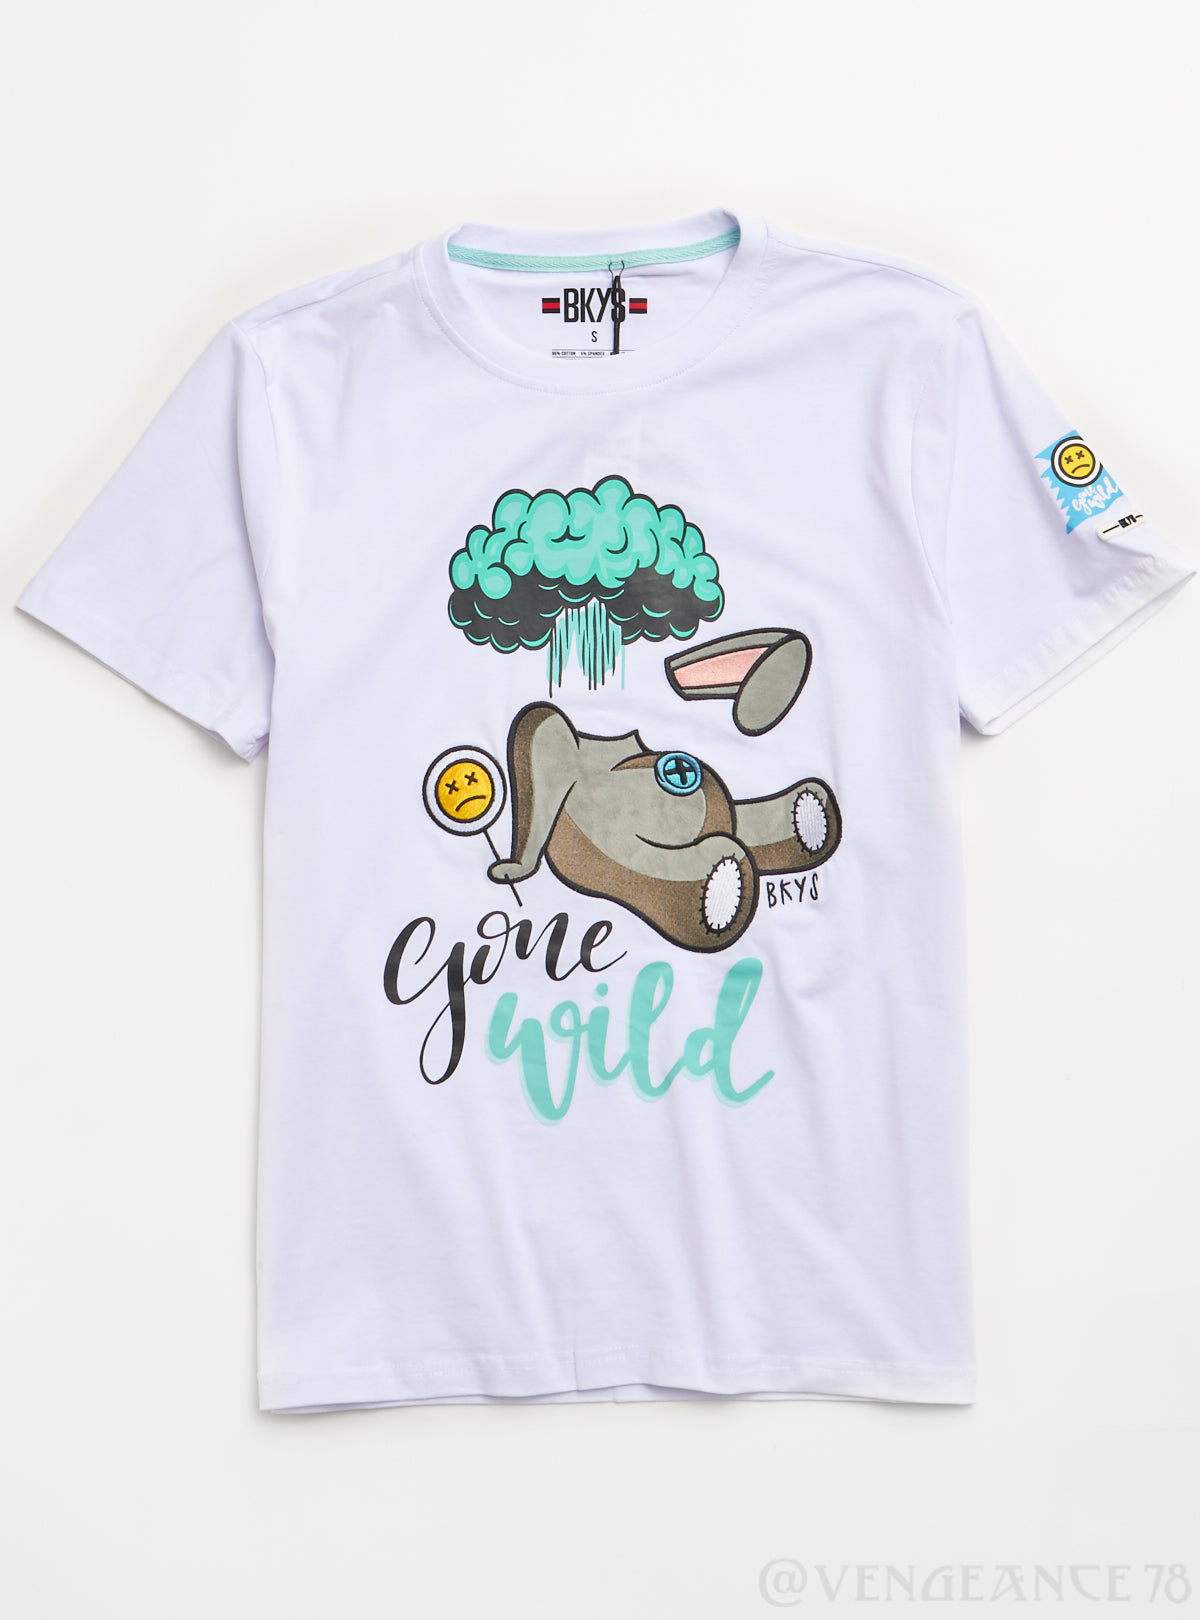 Bkys T-Shirt - Gone Wild - White - T182